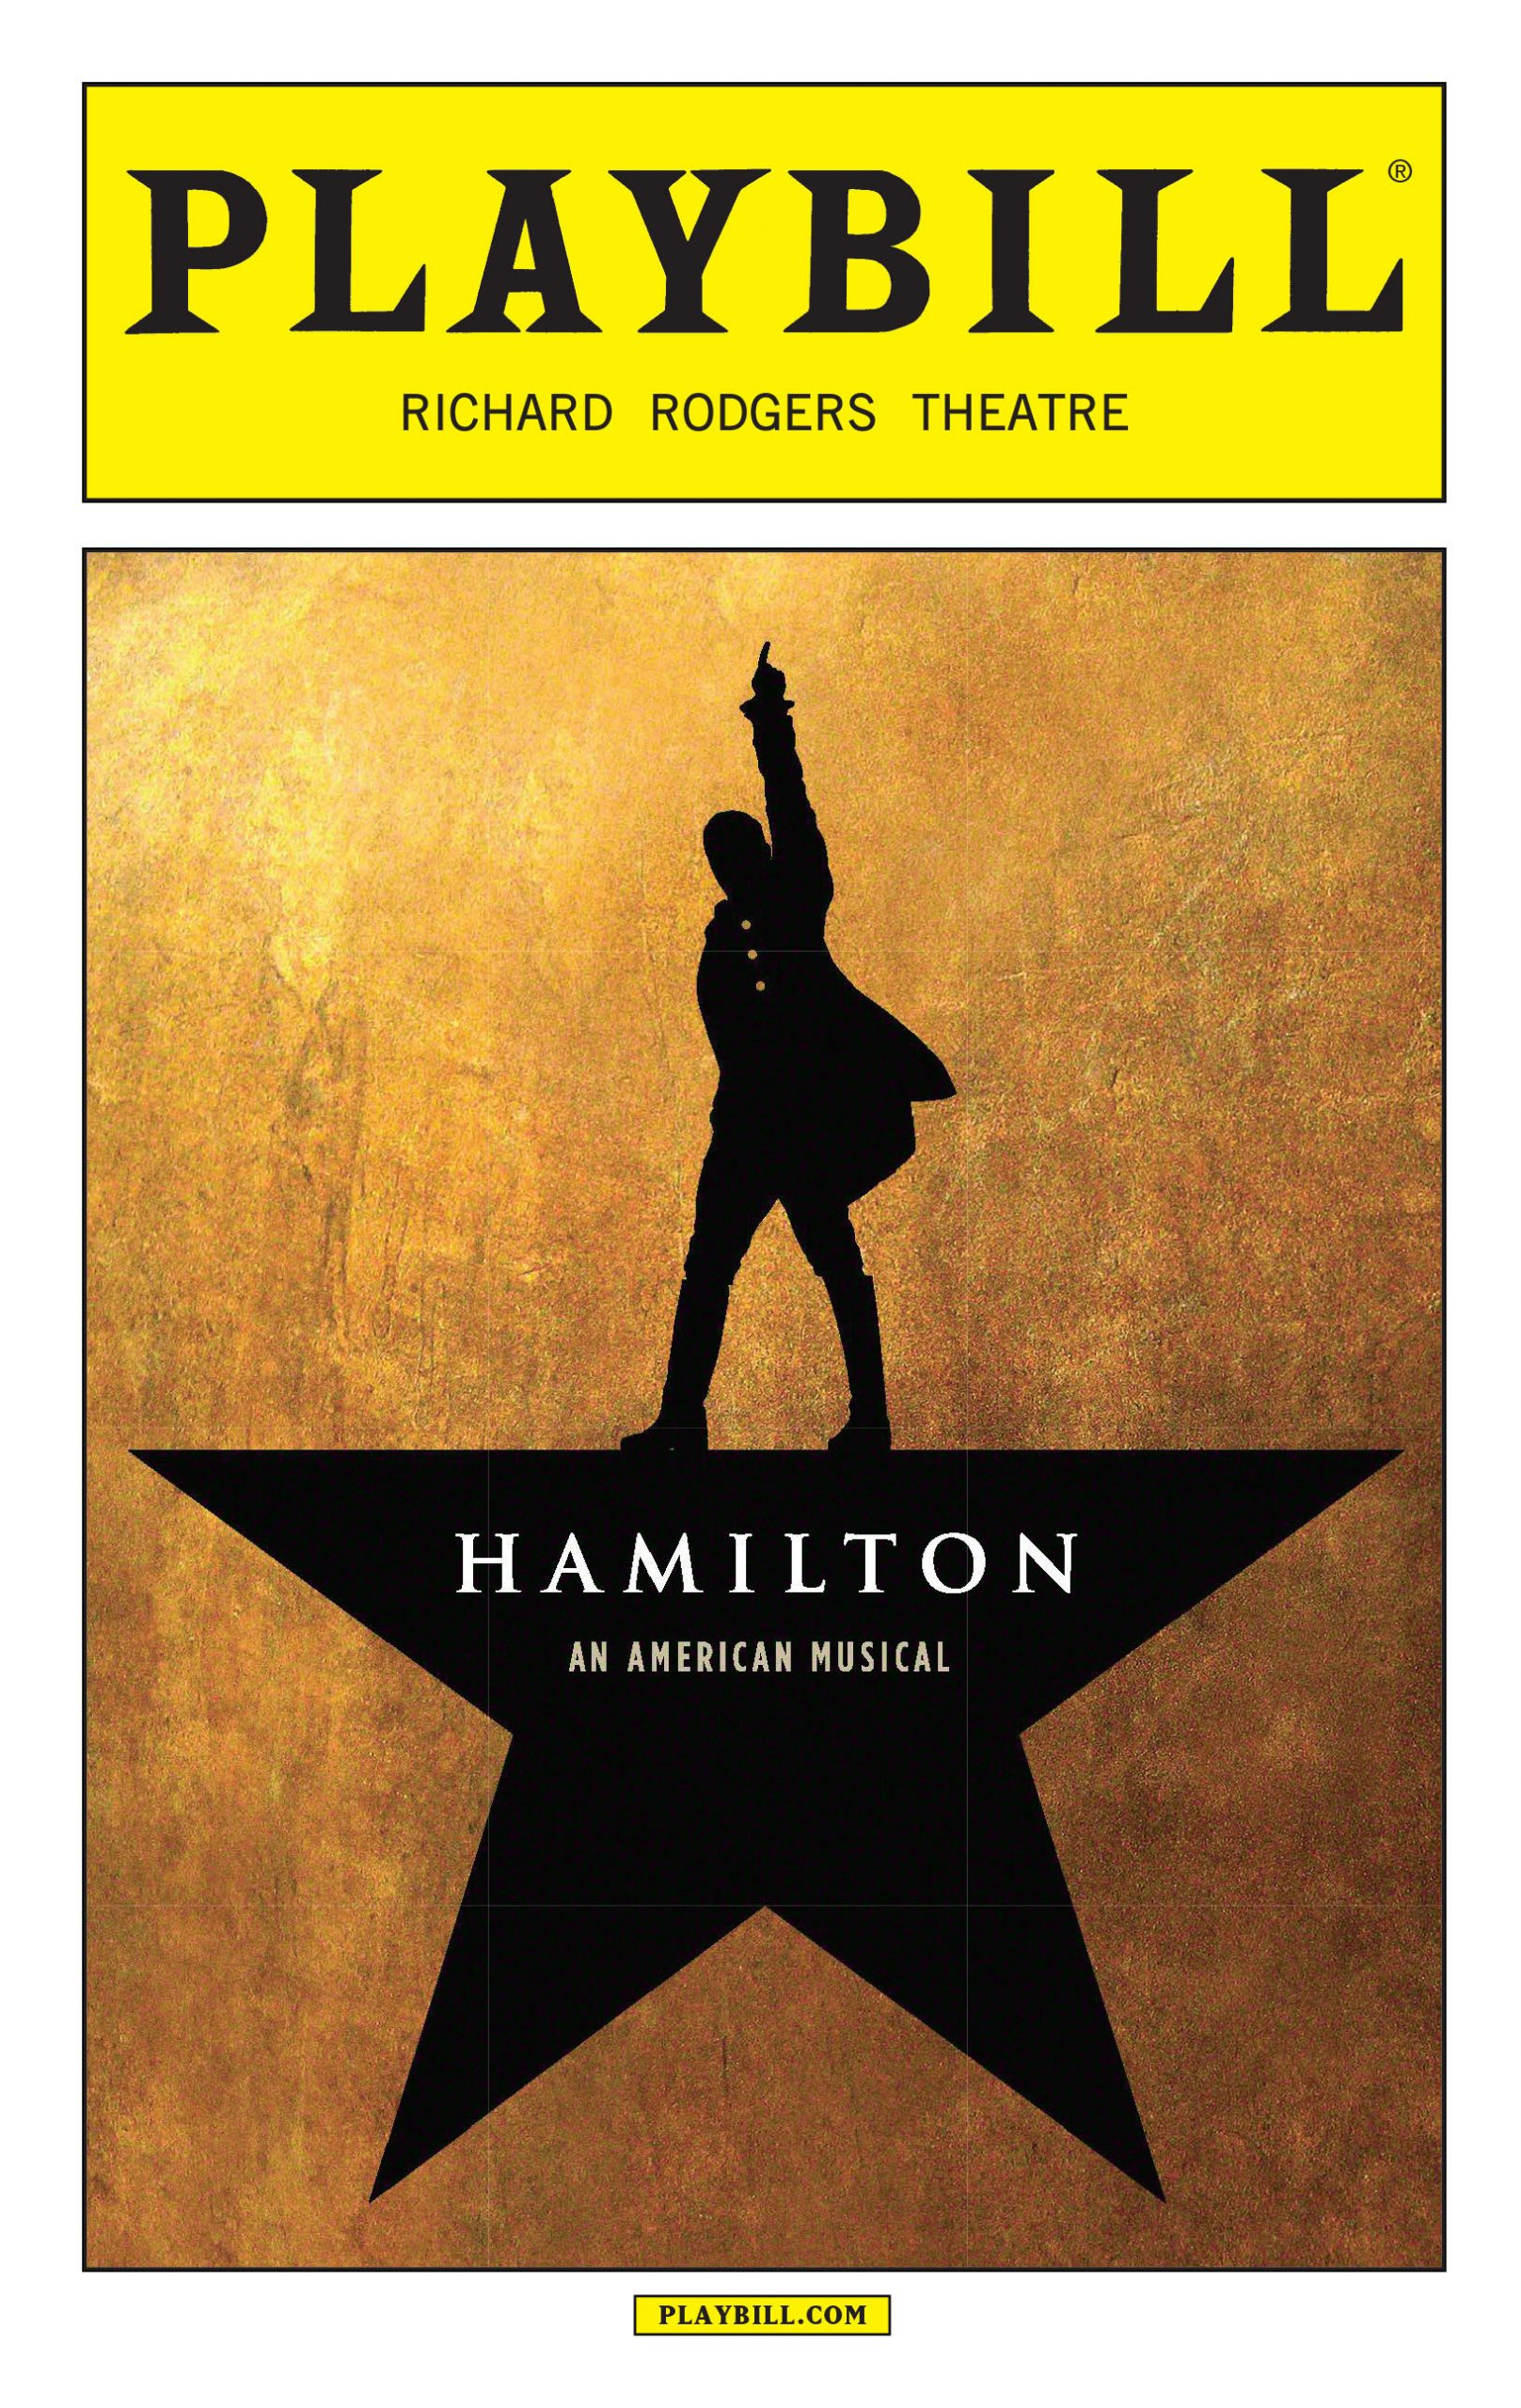 Playbill Template Free Download